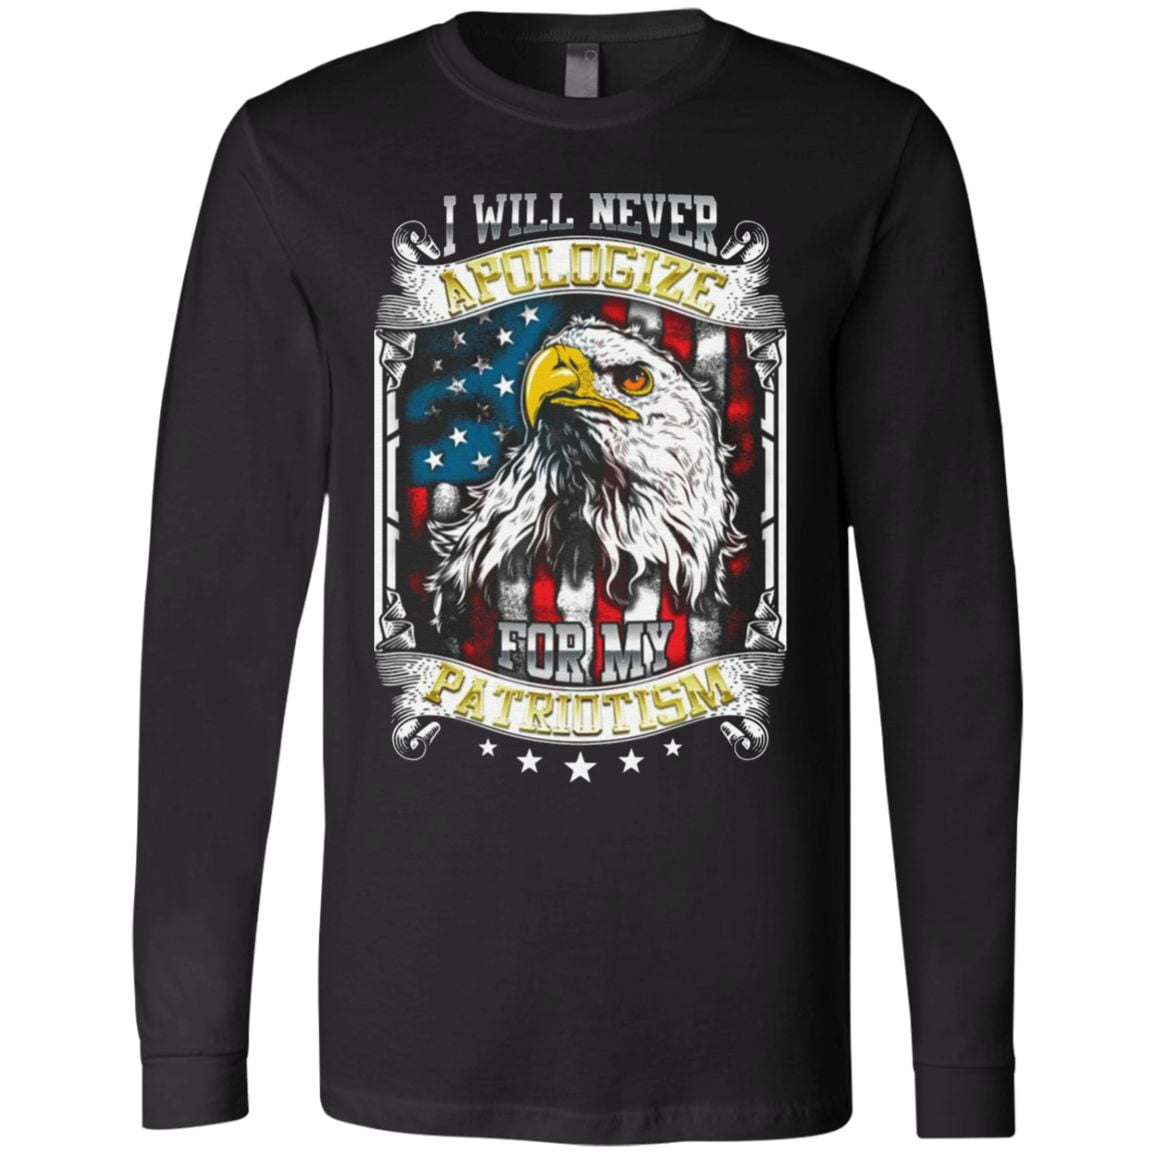 I Will Never Apologize For My Patriotism American Flag T Shirt